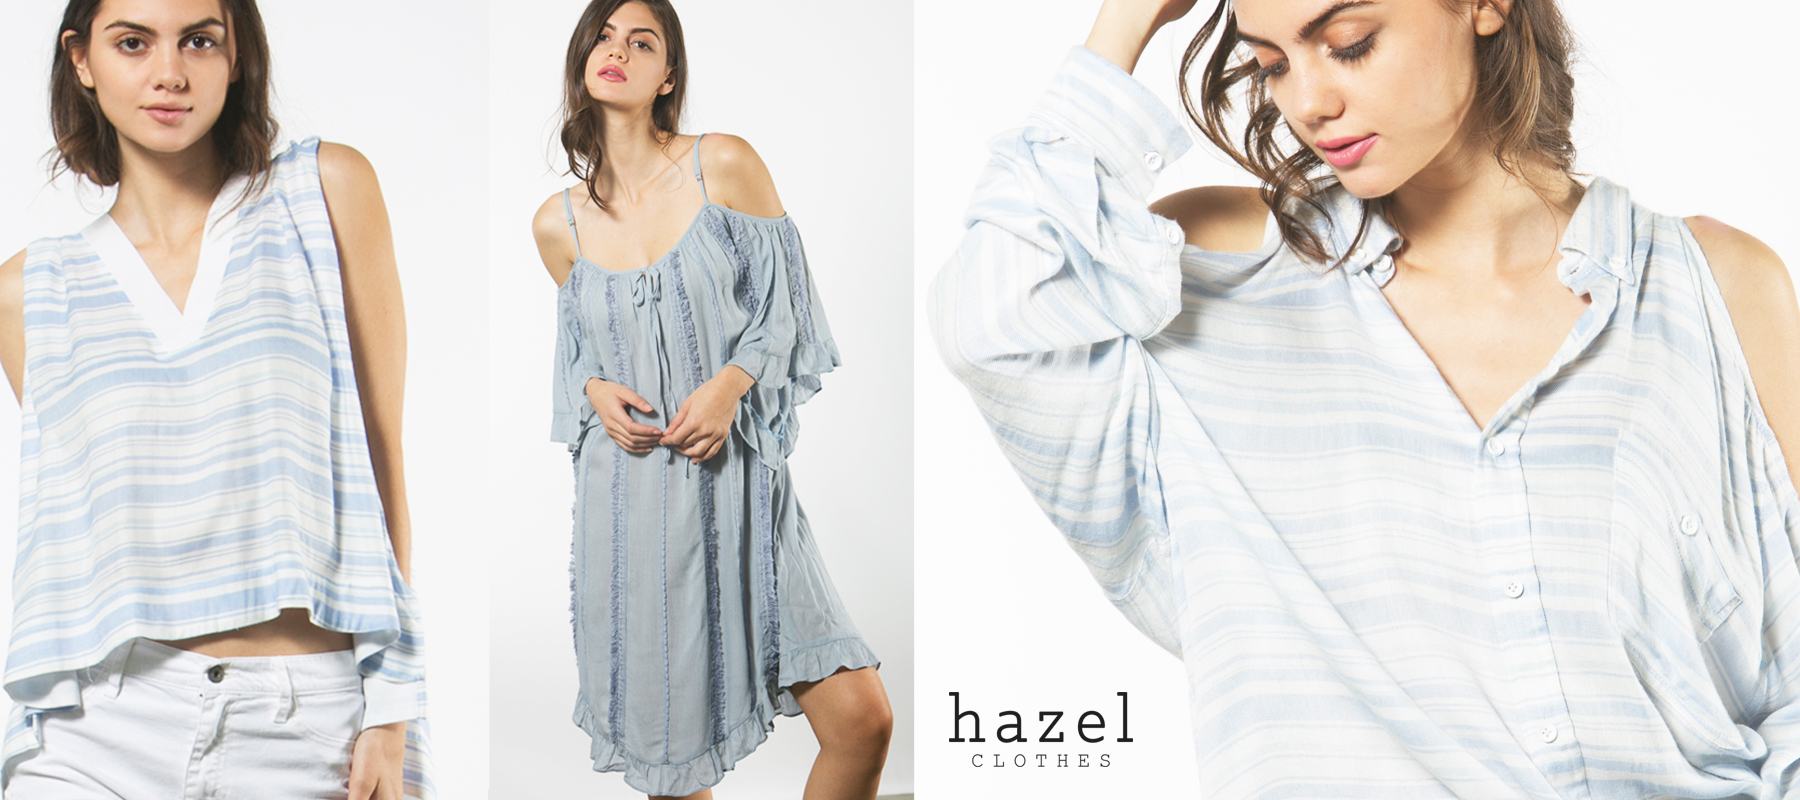 hazel clothes slide2